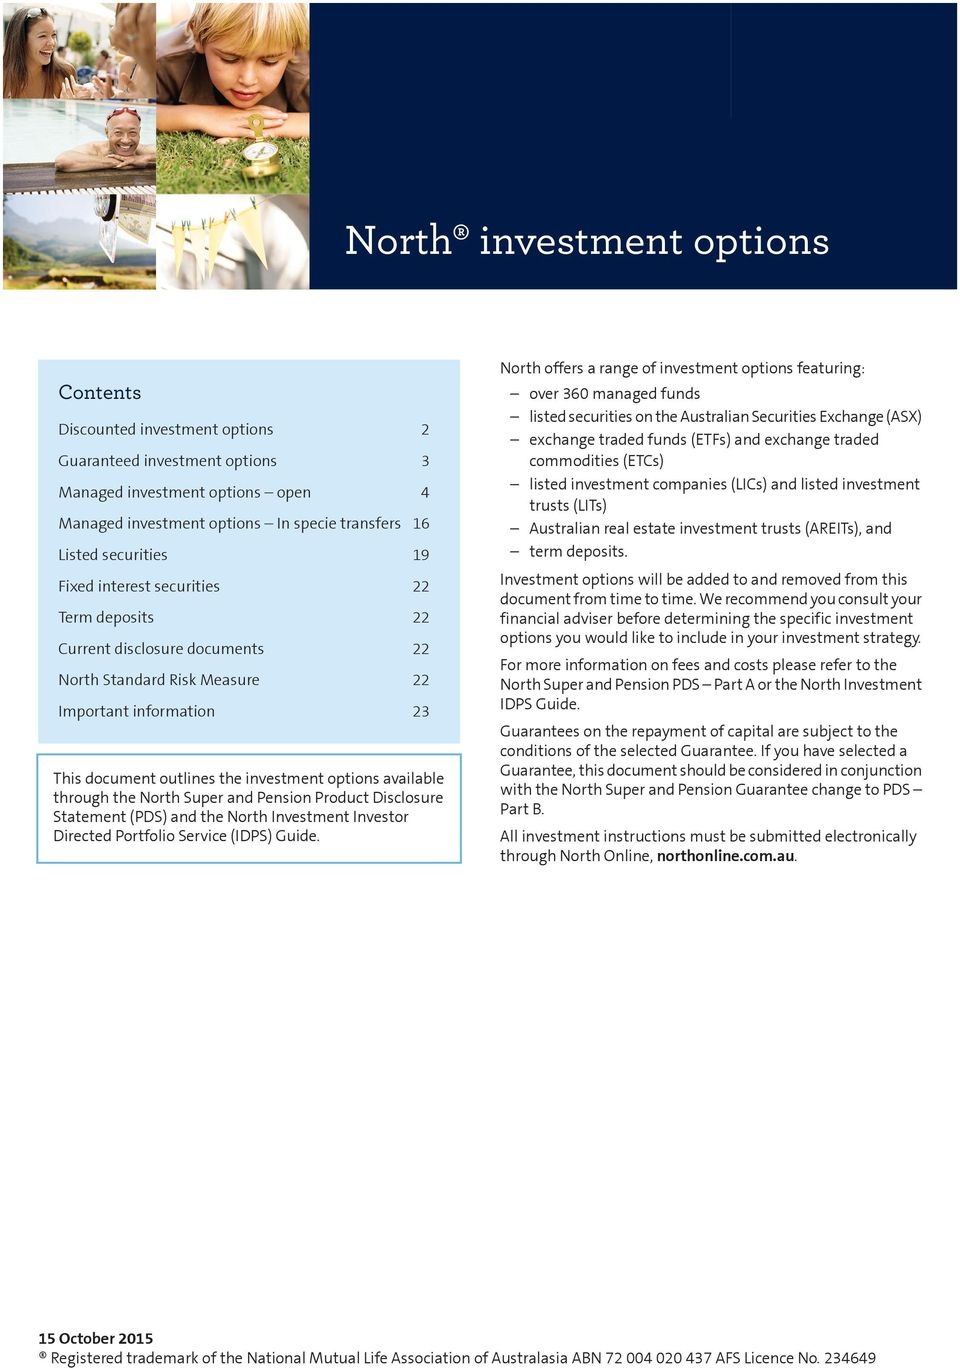 document outlines the investment options available through the North Super and Pension Product Disclosure Statement (PDS) and the North Investor Directed Portfolio Service (IDPS) Guide.